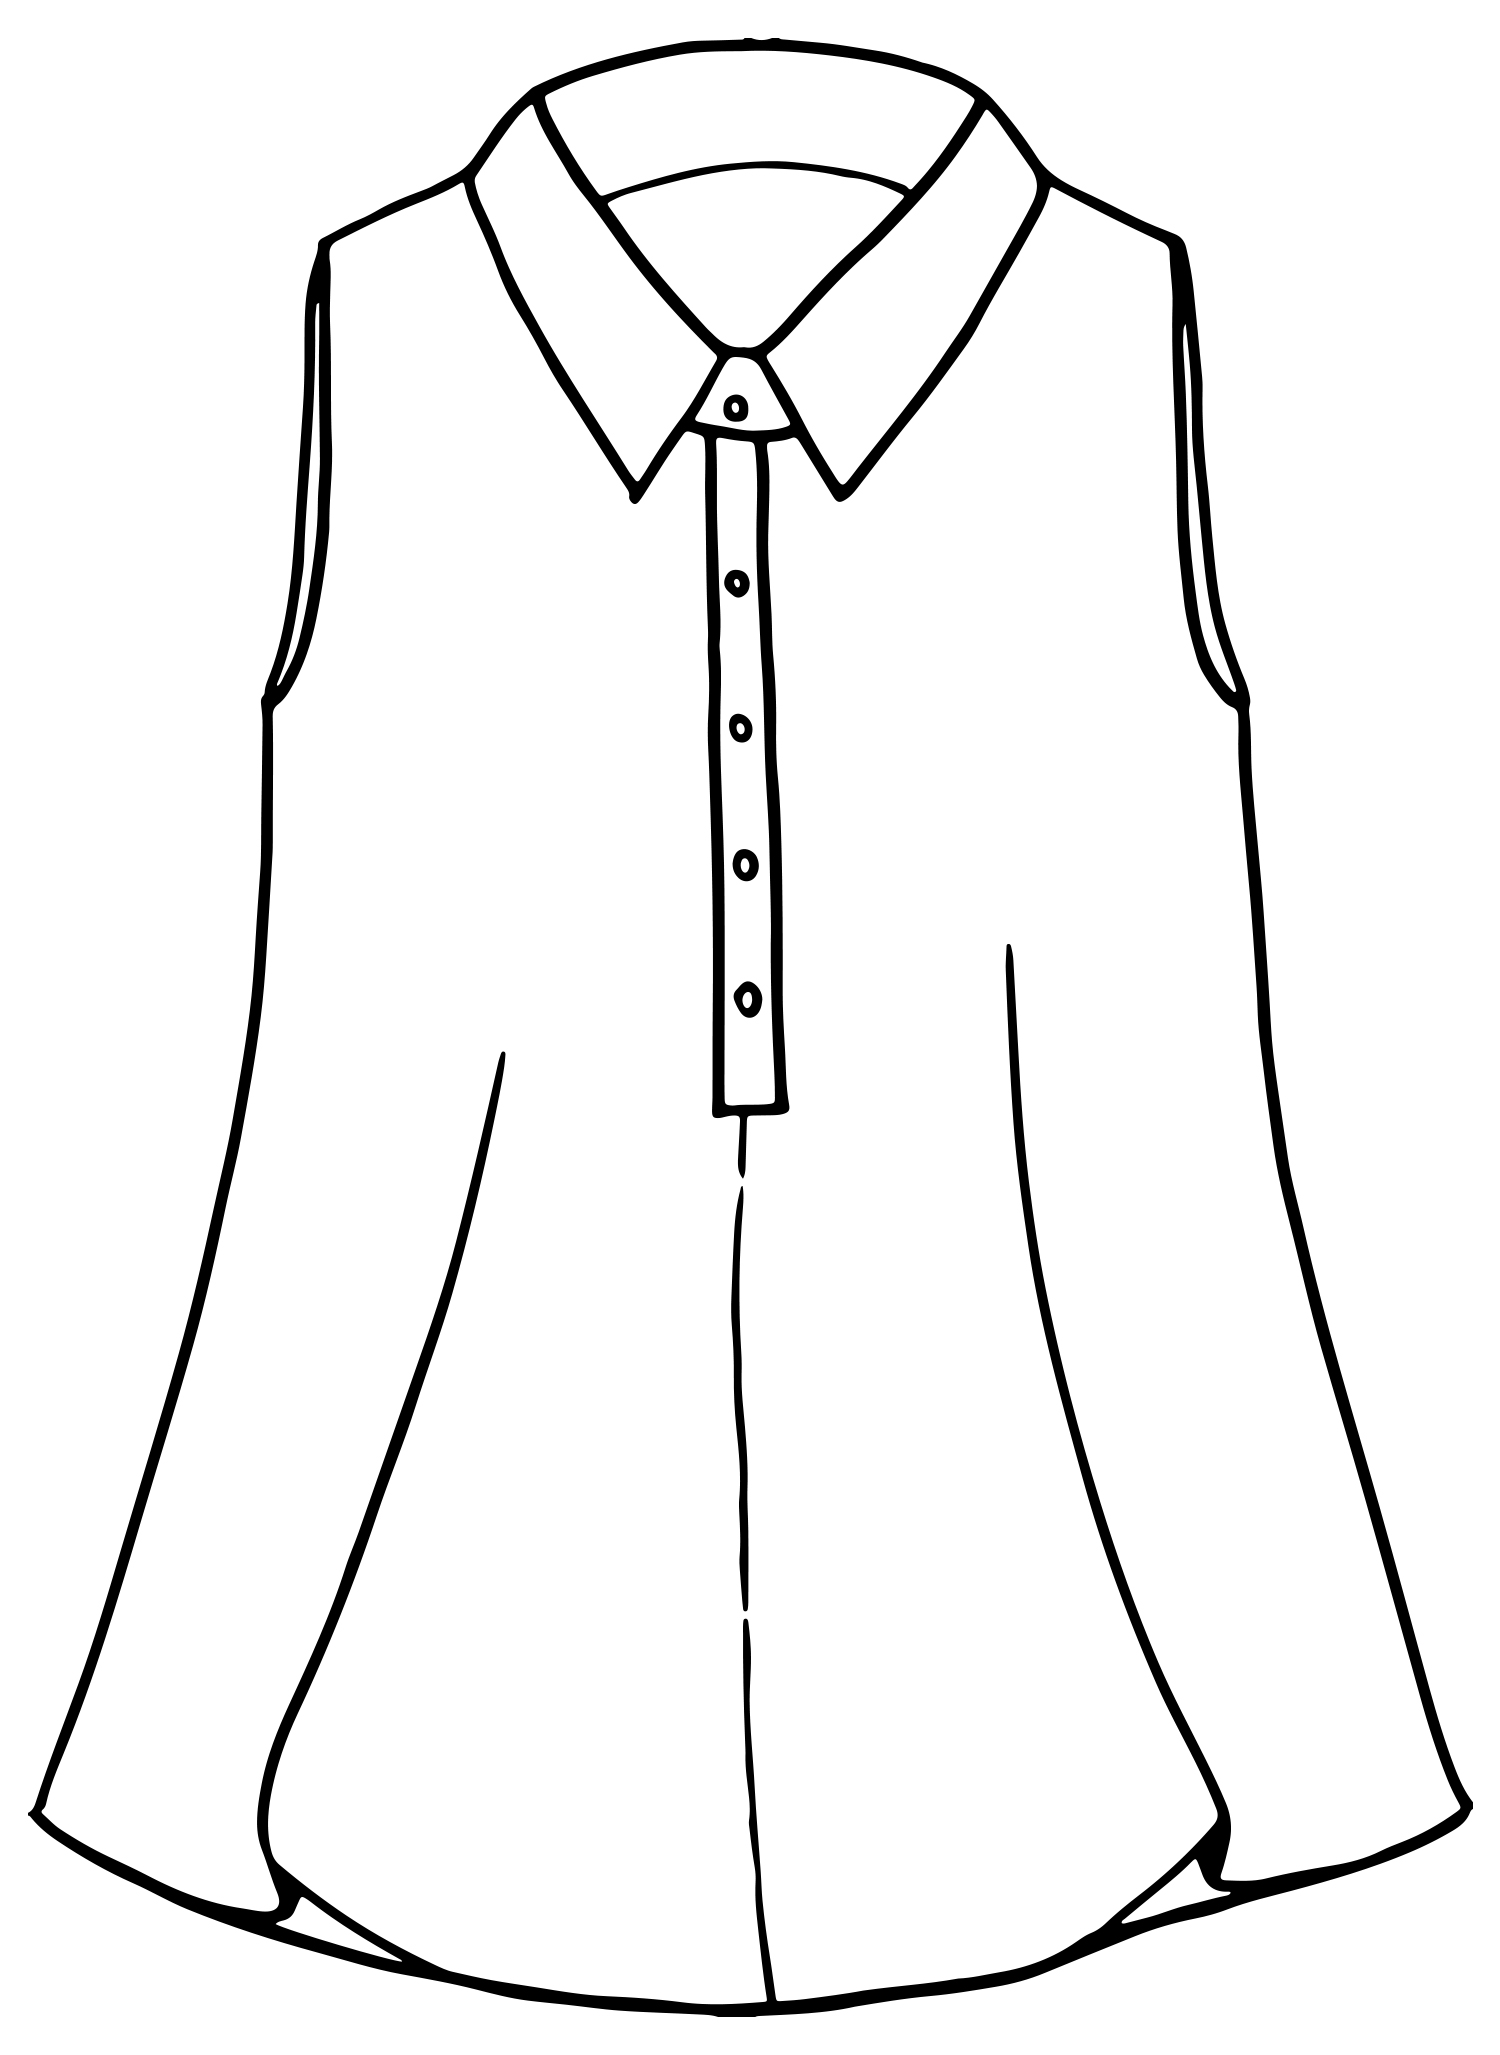 Speakeasy Sleeveless sketch image